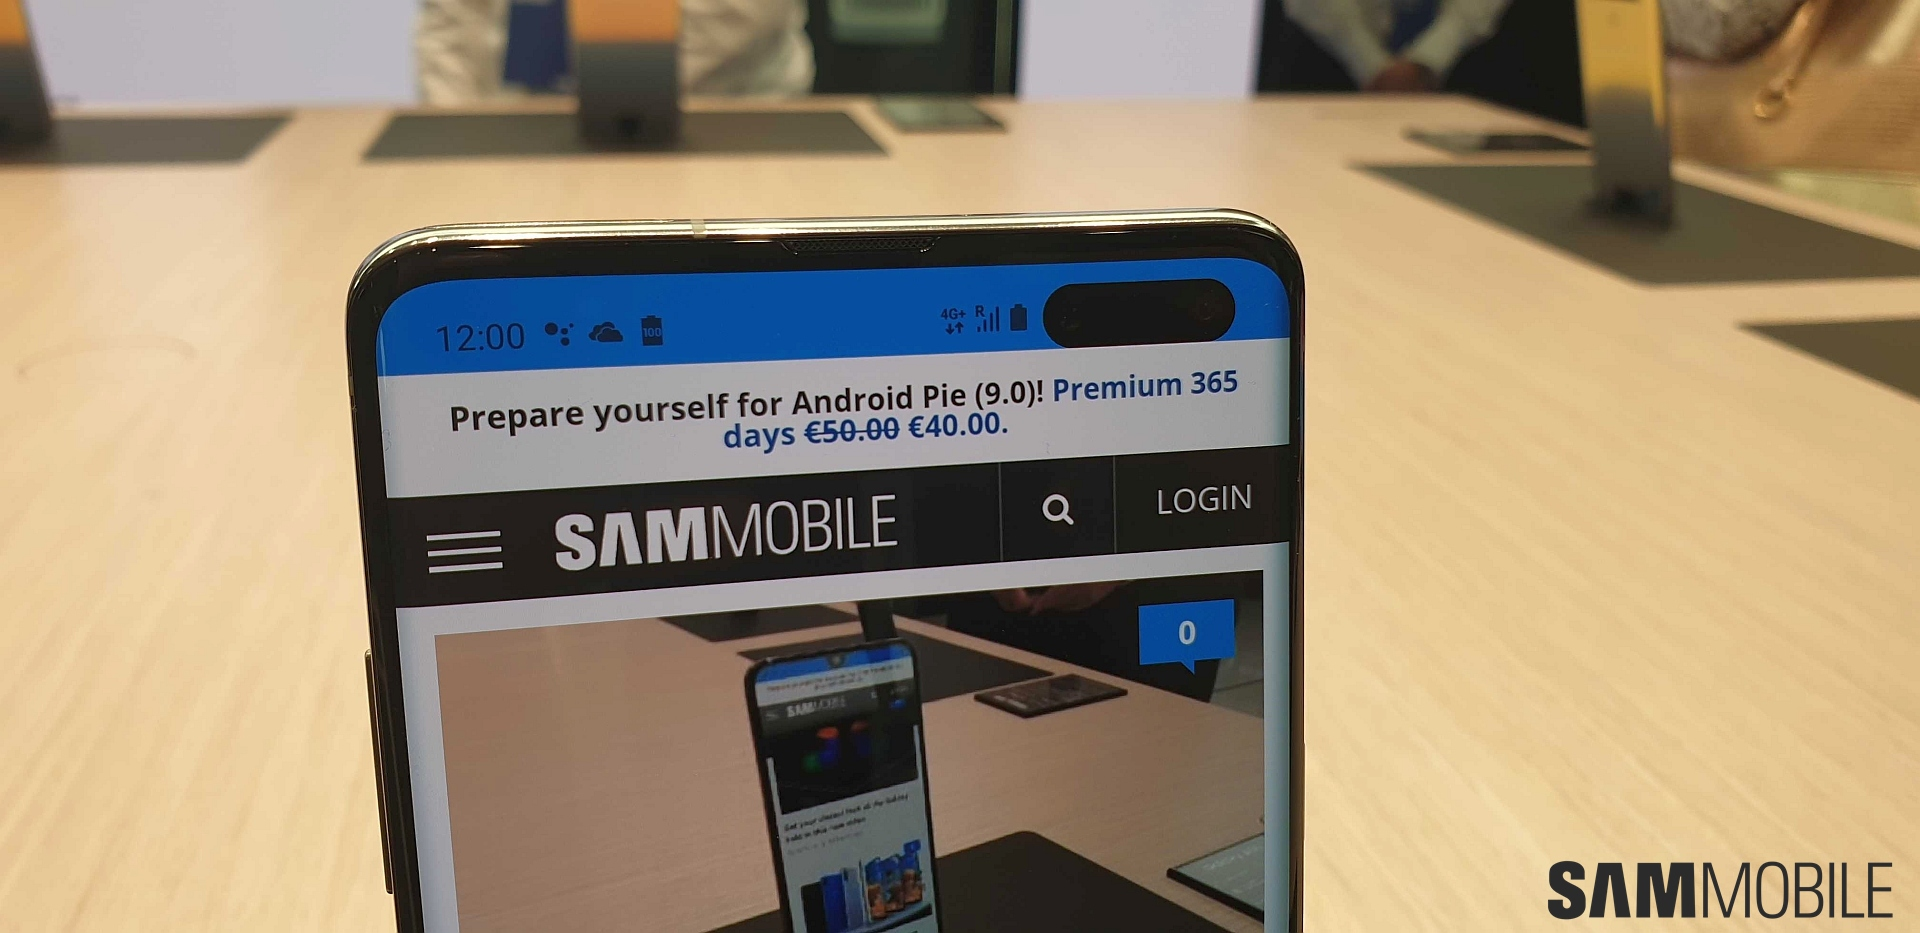 www sammobile com on reddit com